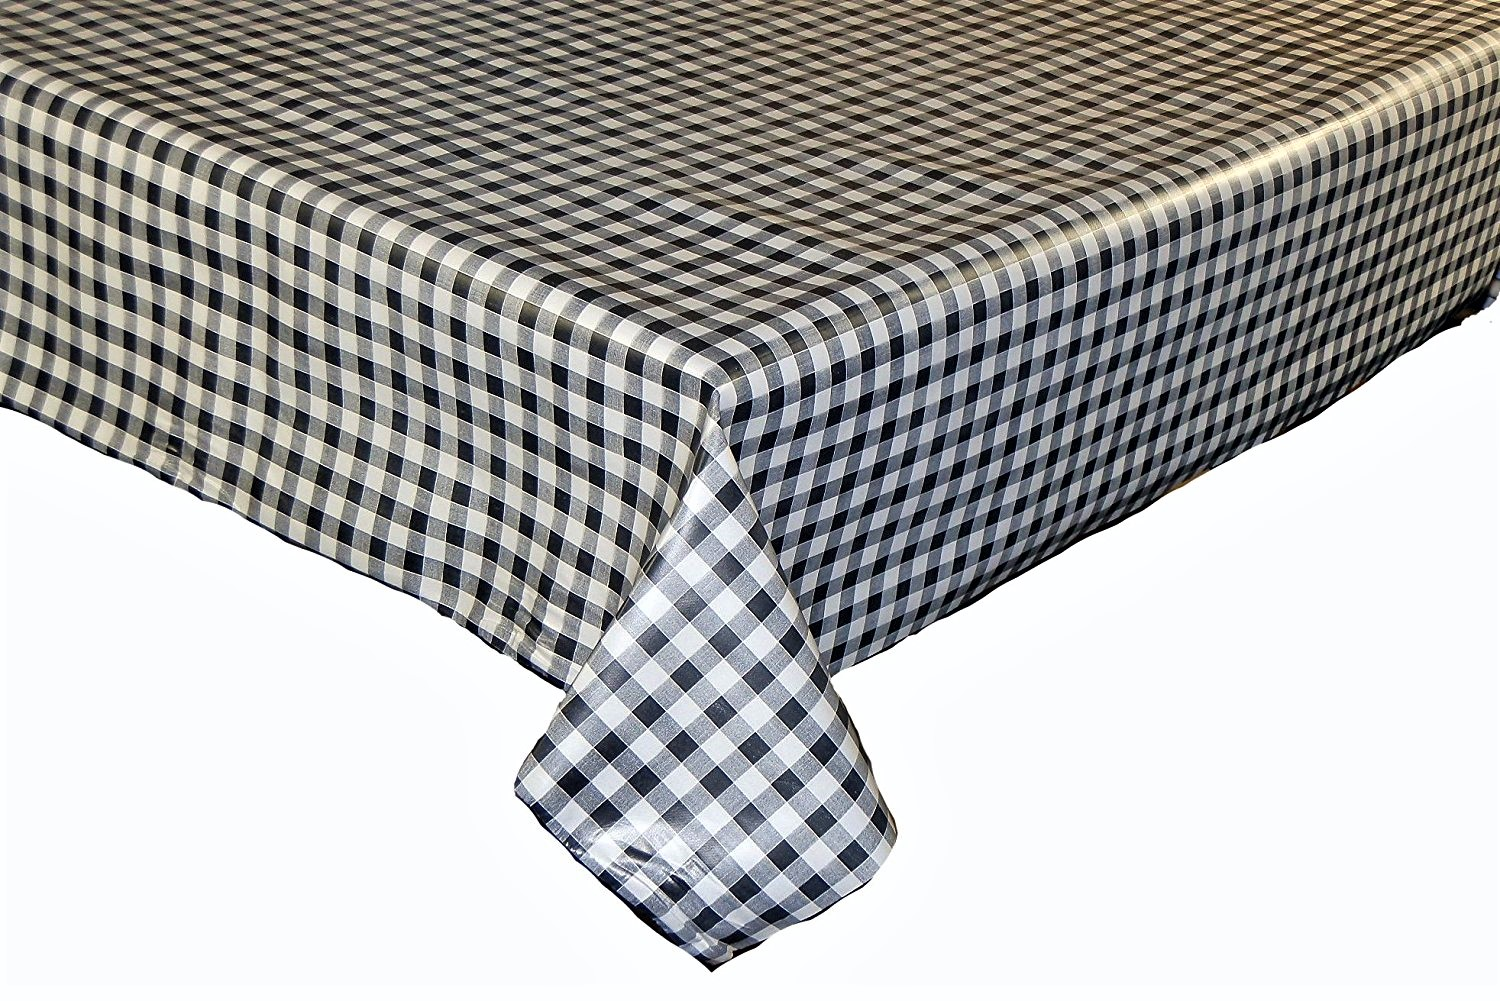 Charcoal gingham check vinyl tablecloth